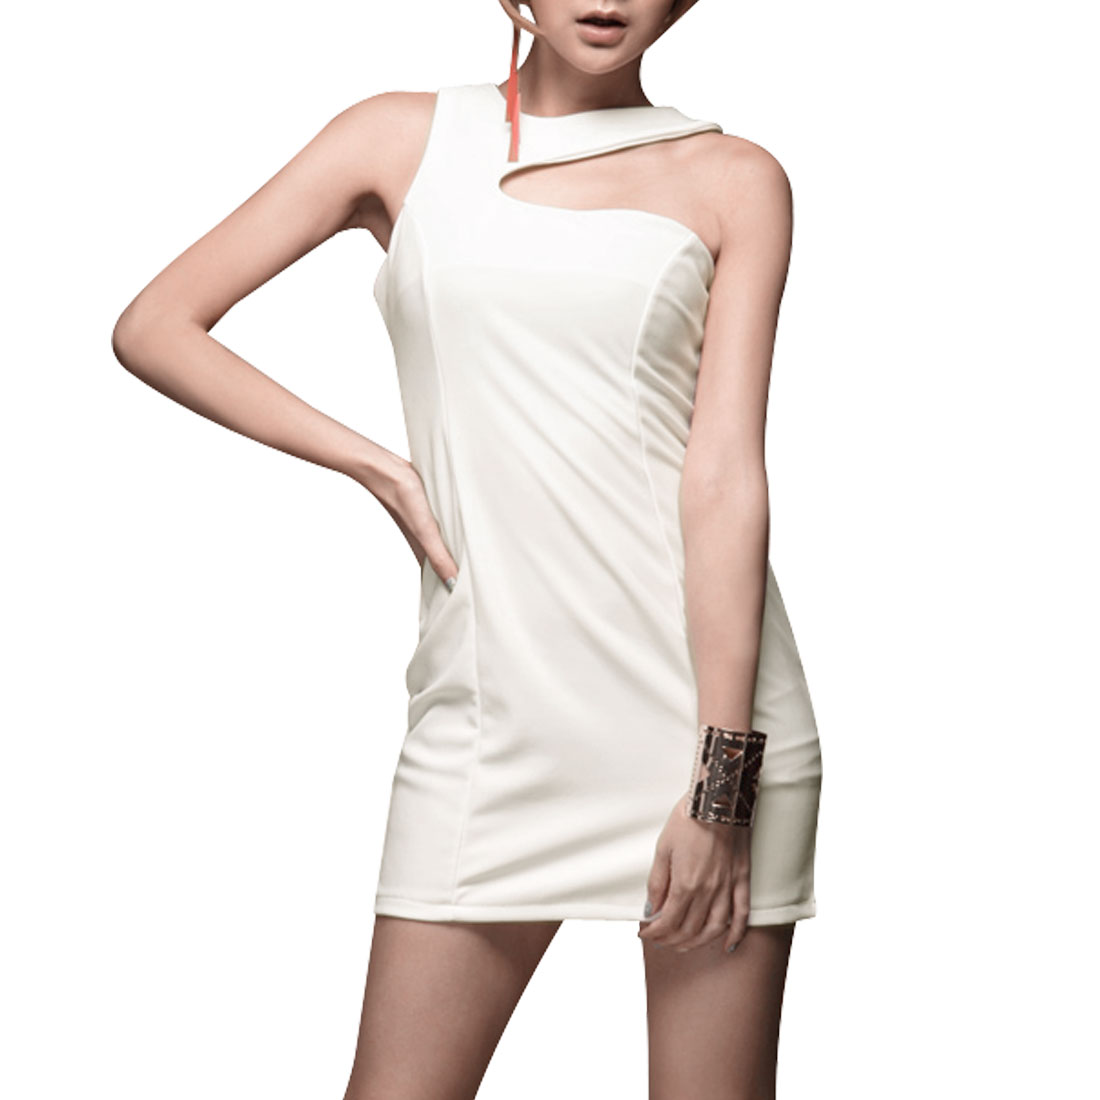 Pullover Sleeveless Hip Hugging Solid White Mini Dress XS for Ladies